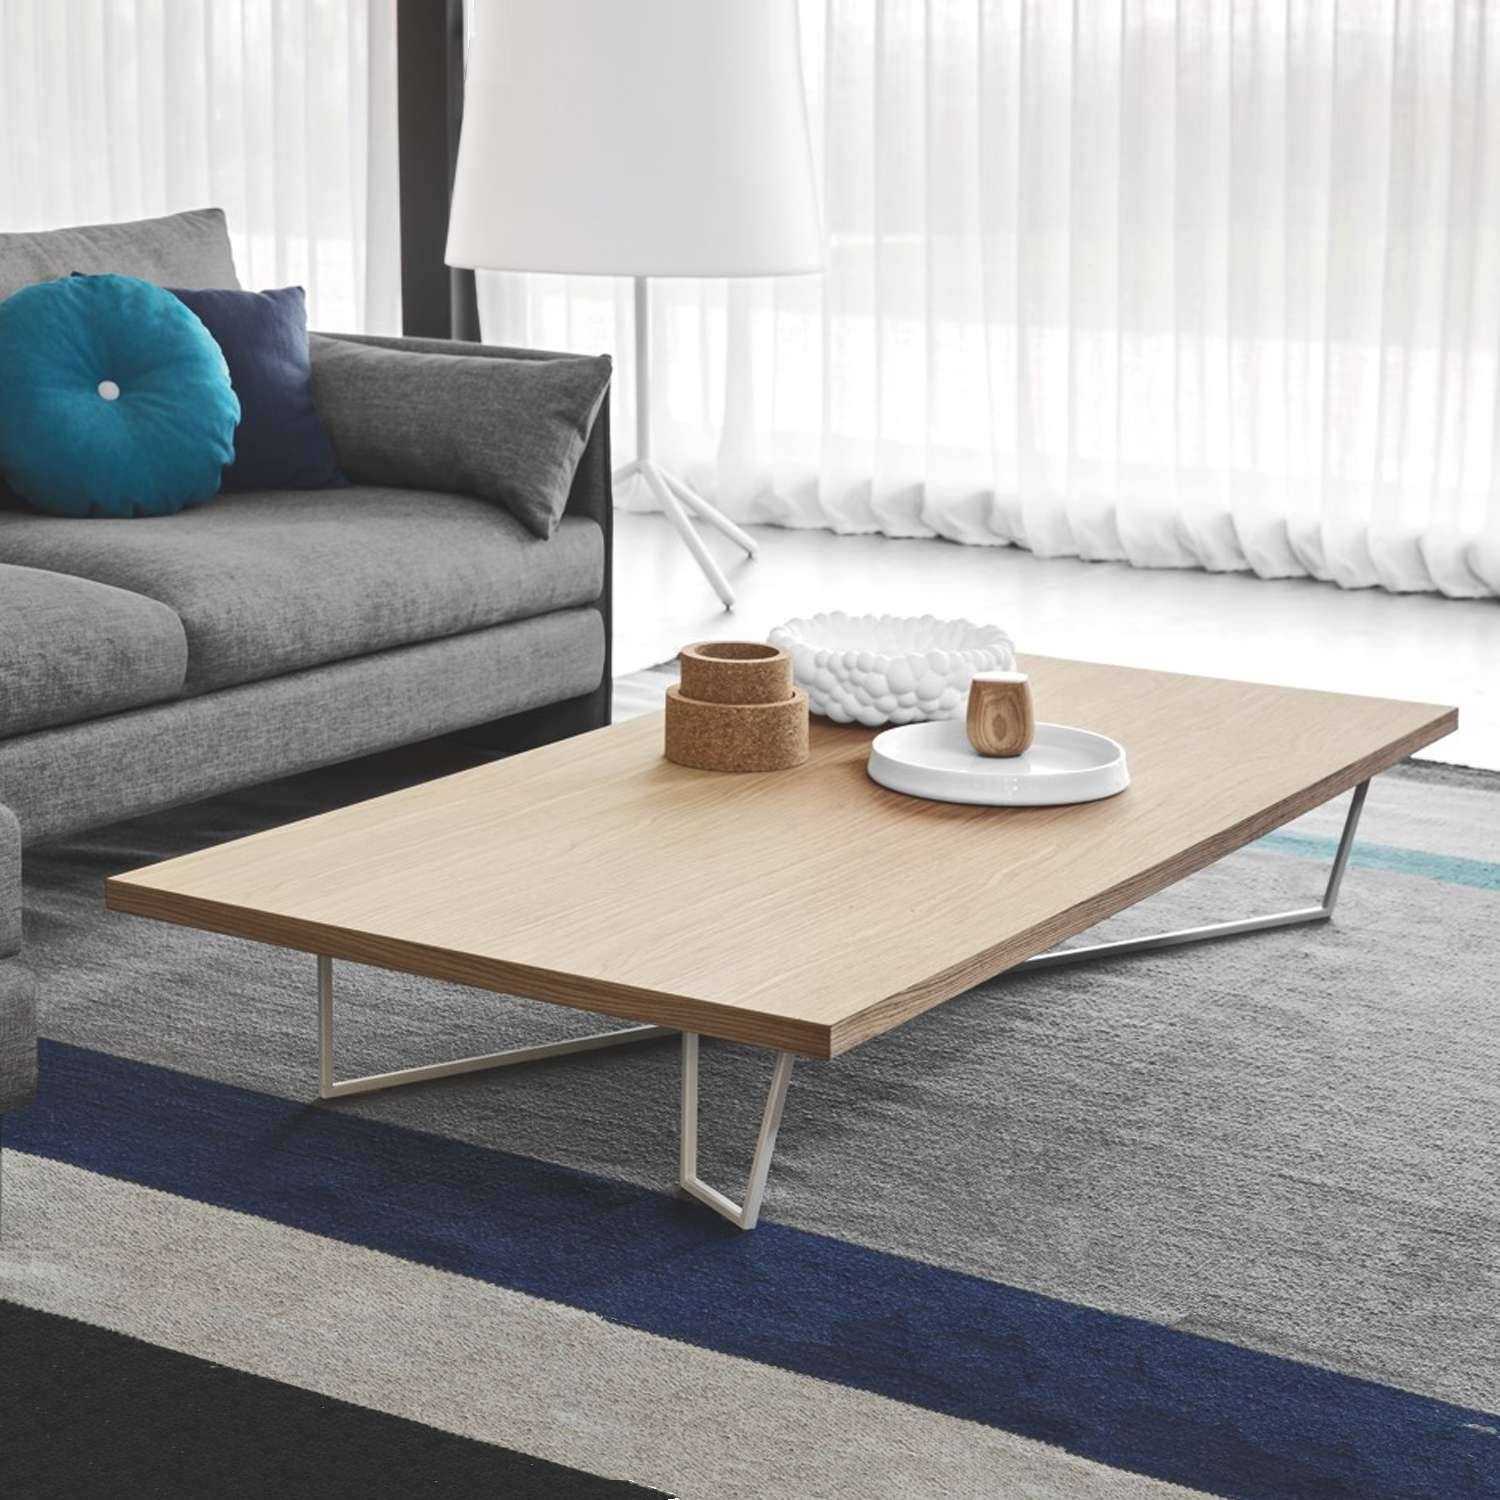 Lack Coffee Table White 35x22x18 Ikea Low Round 0258000 Pe4019 In Large Low White Coffee Tables (View 4 of 30)